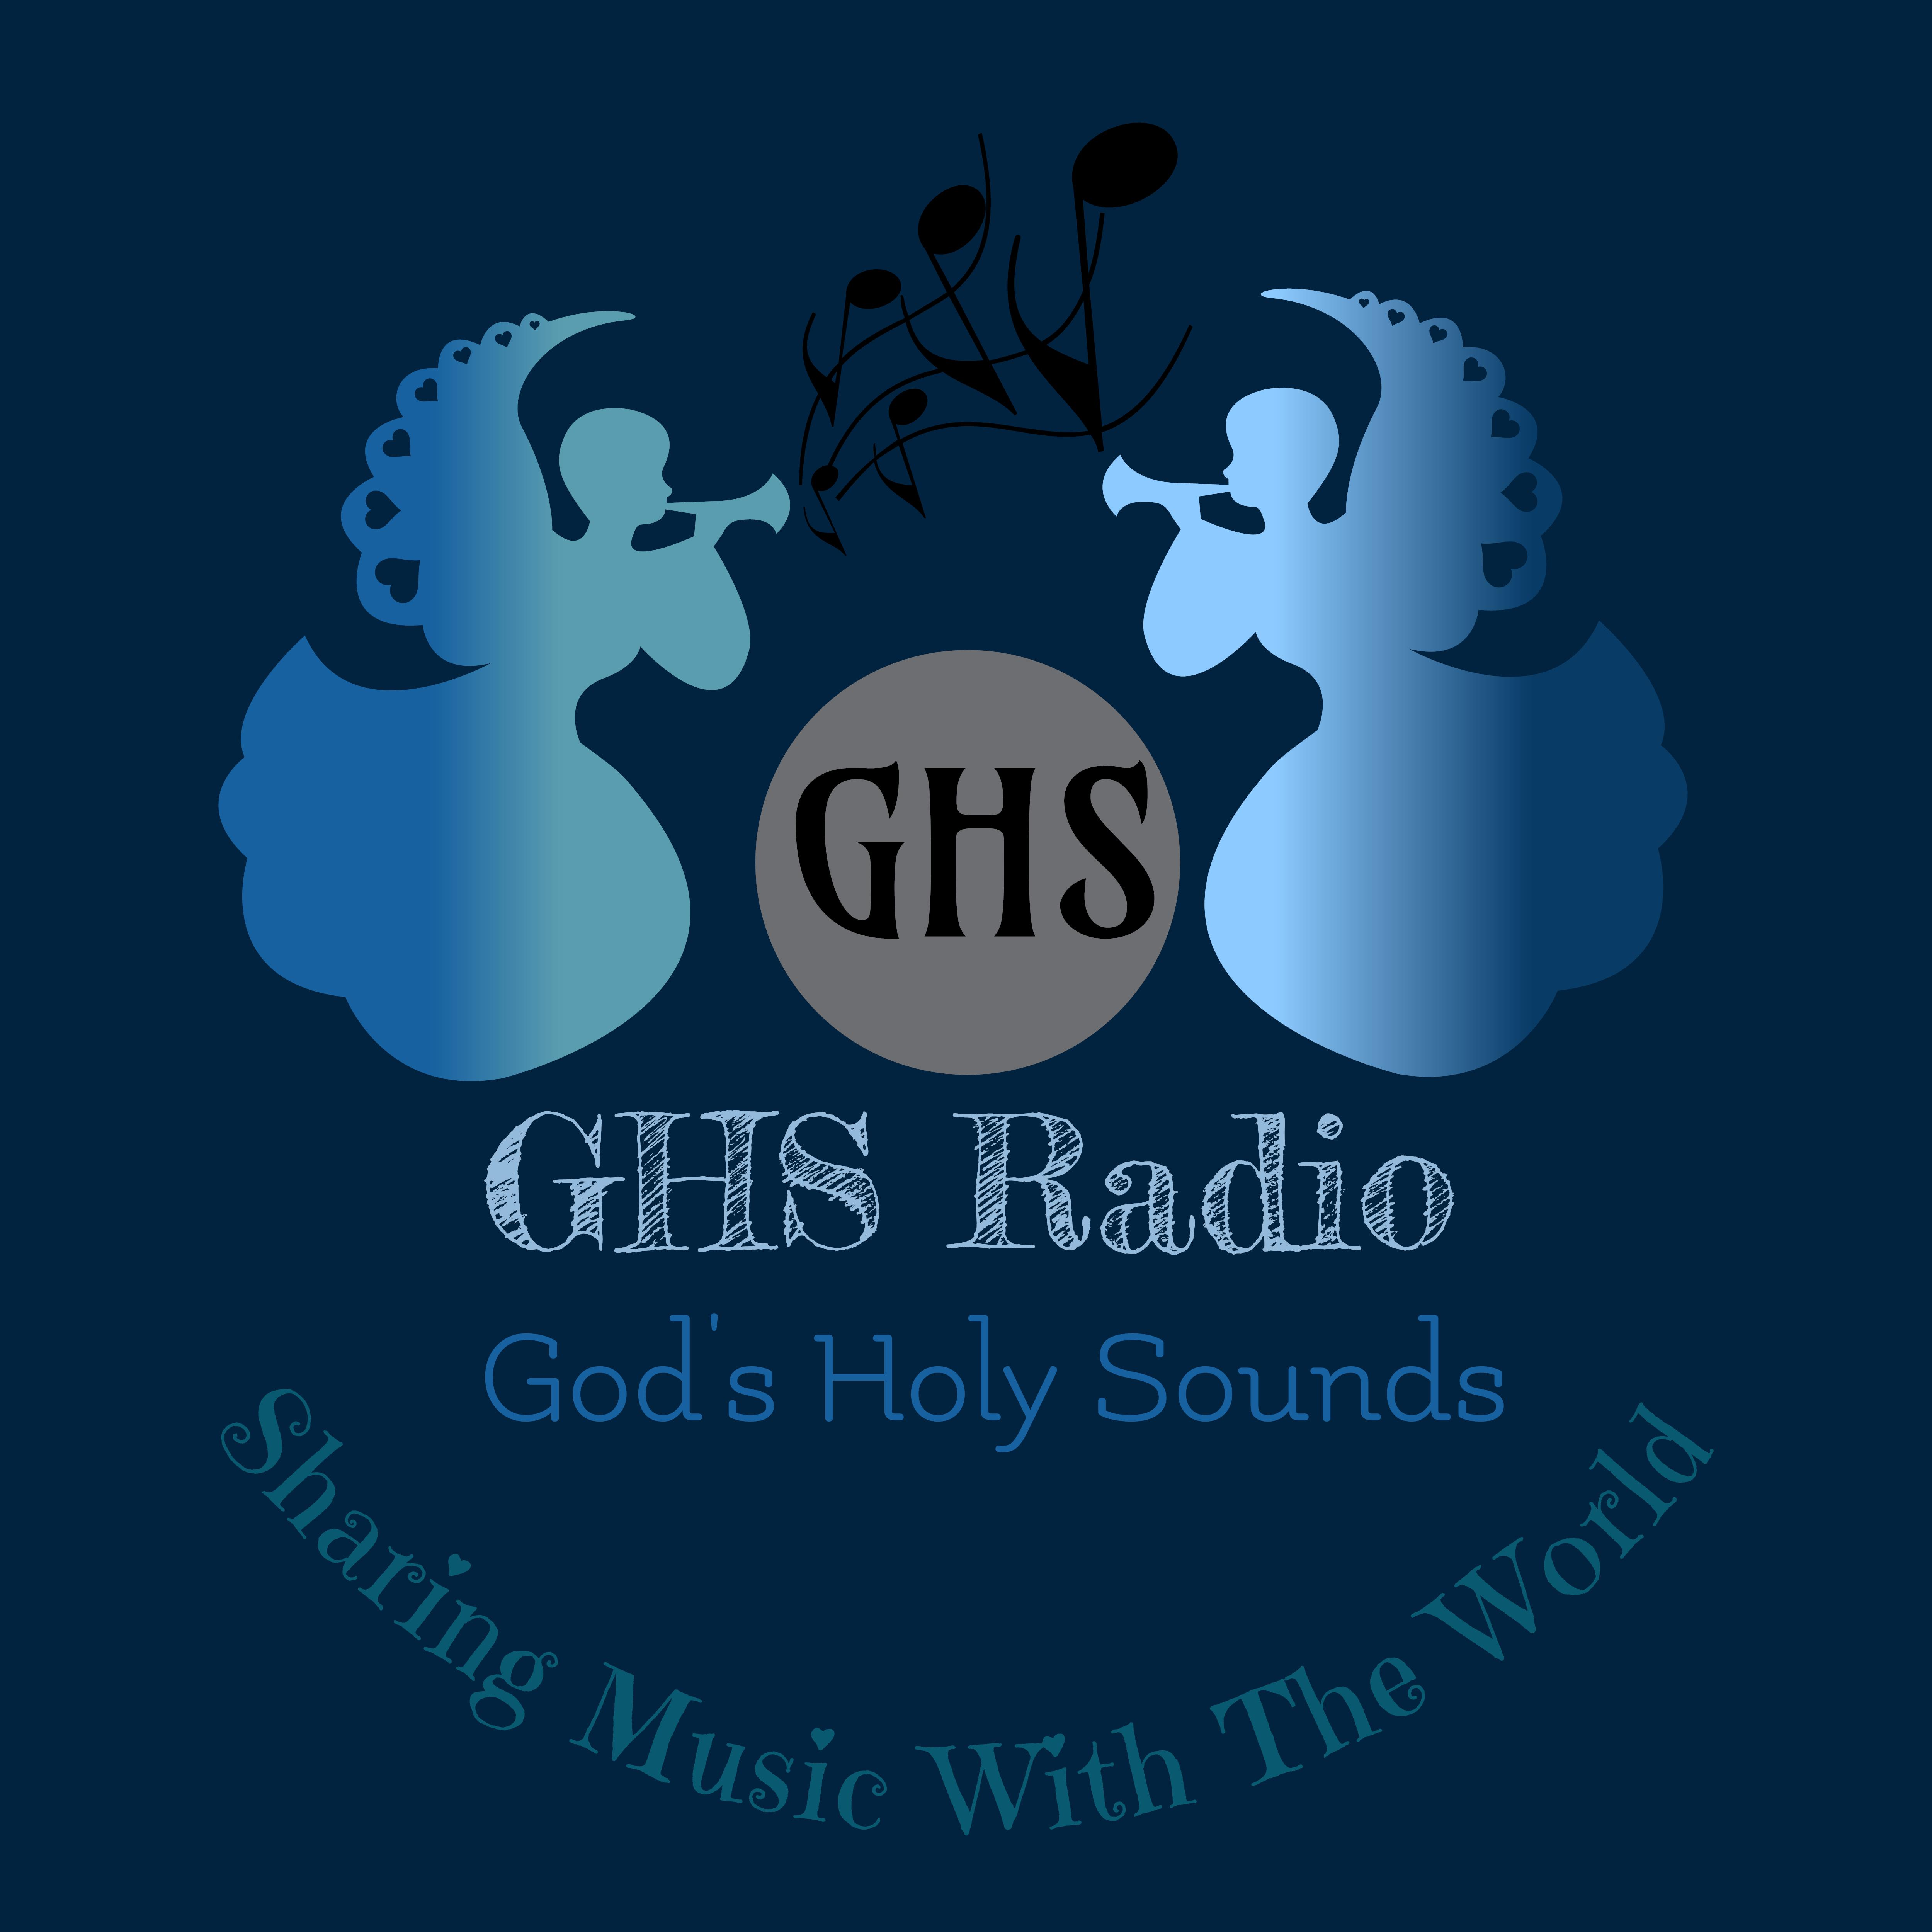 God's Holy Sounds